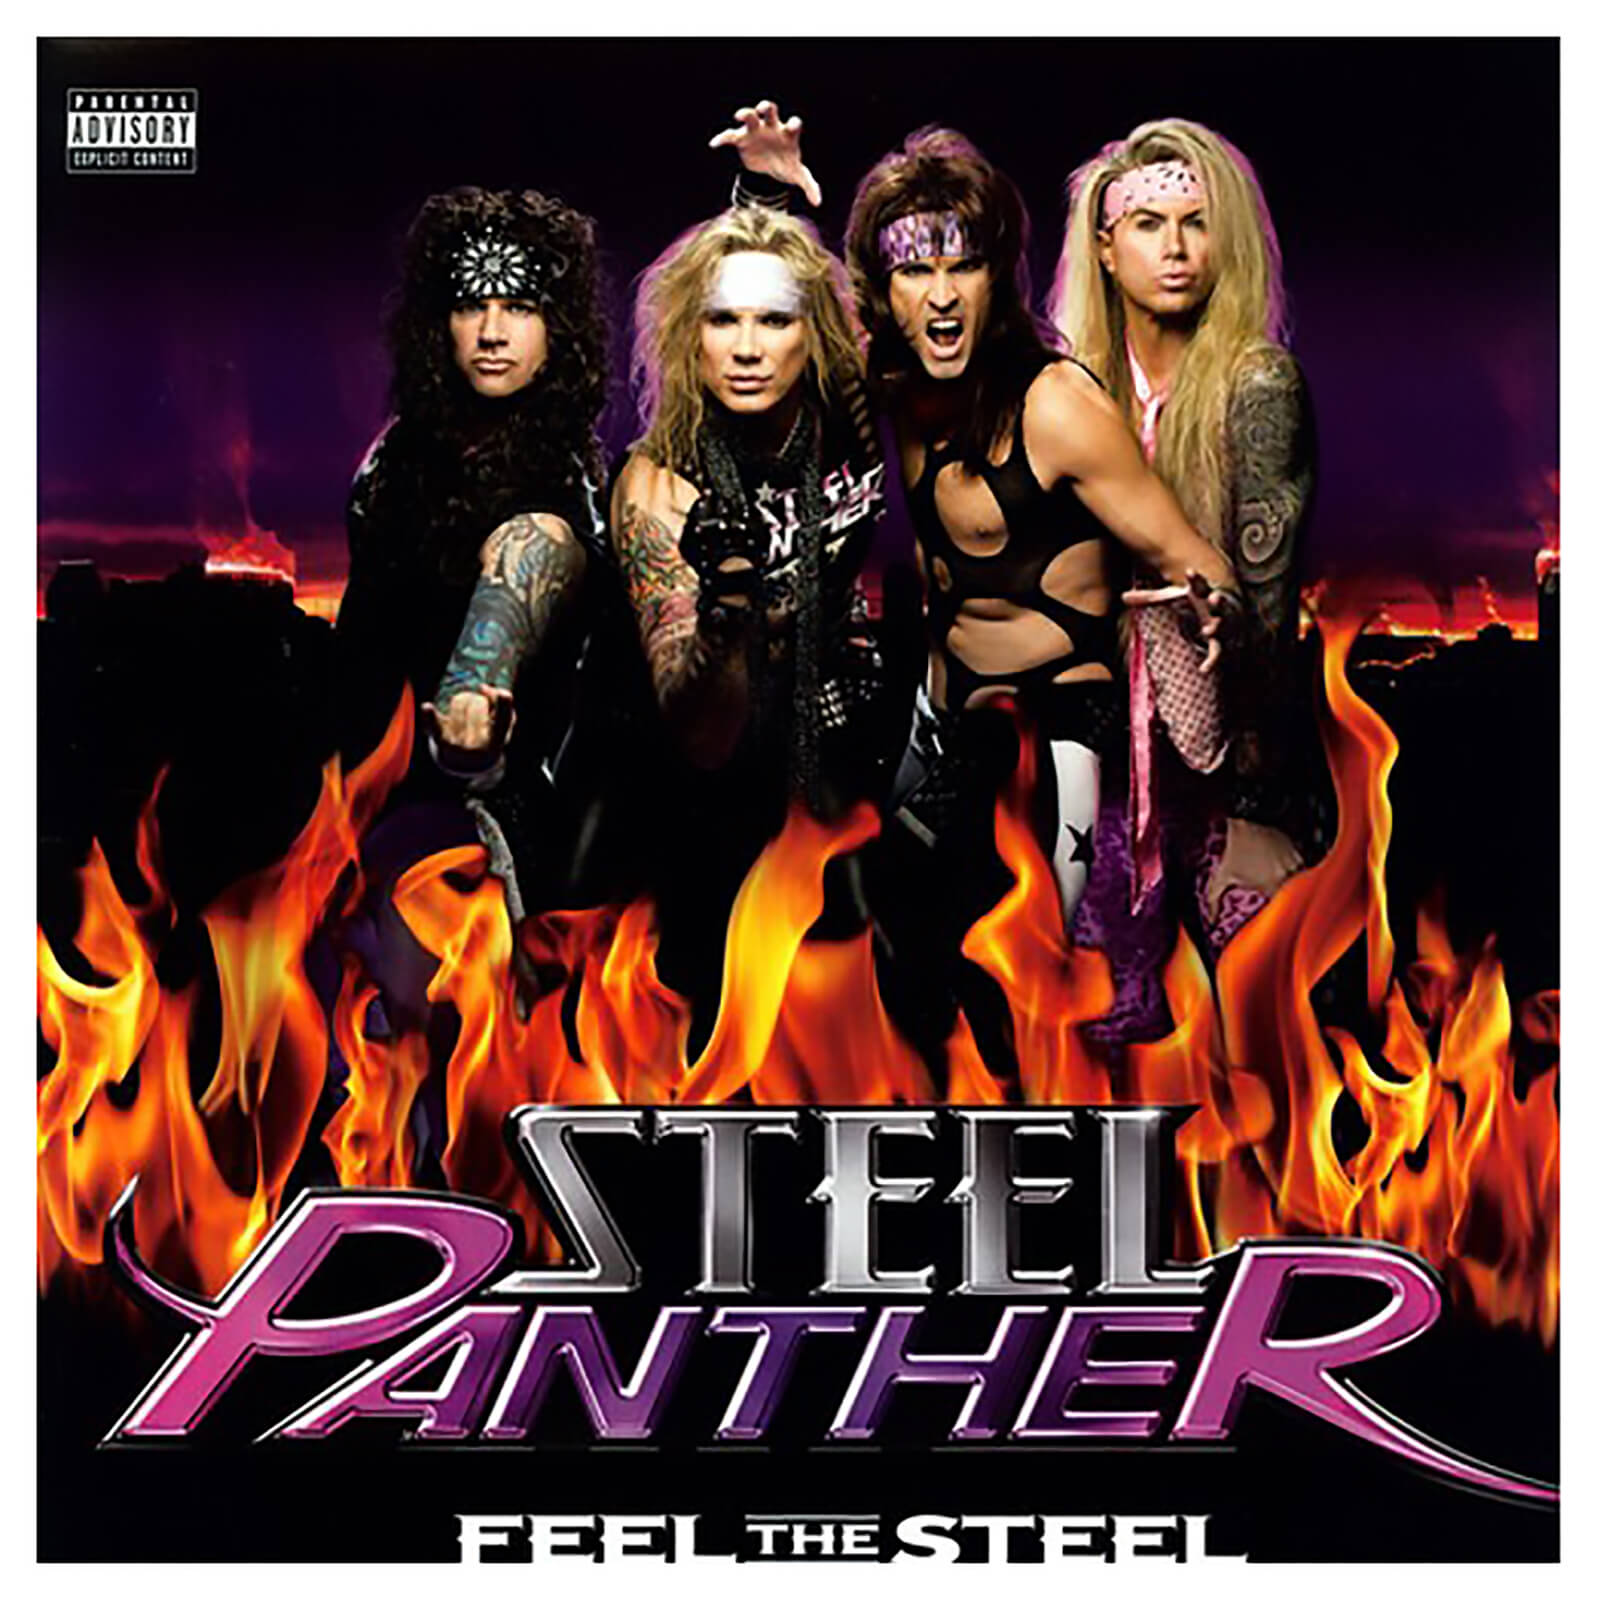 Steel Panther - Feel The Steel - Vinyl